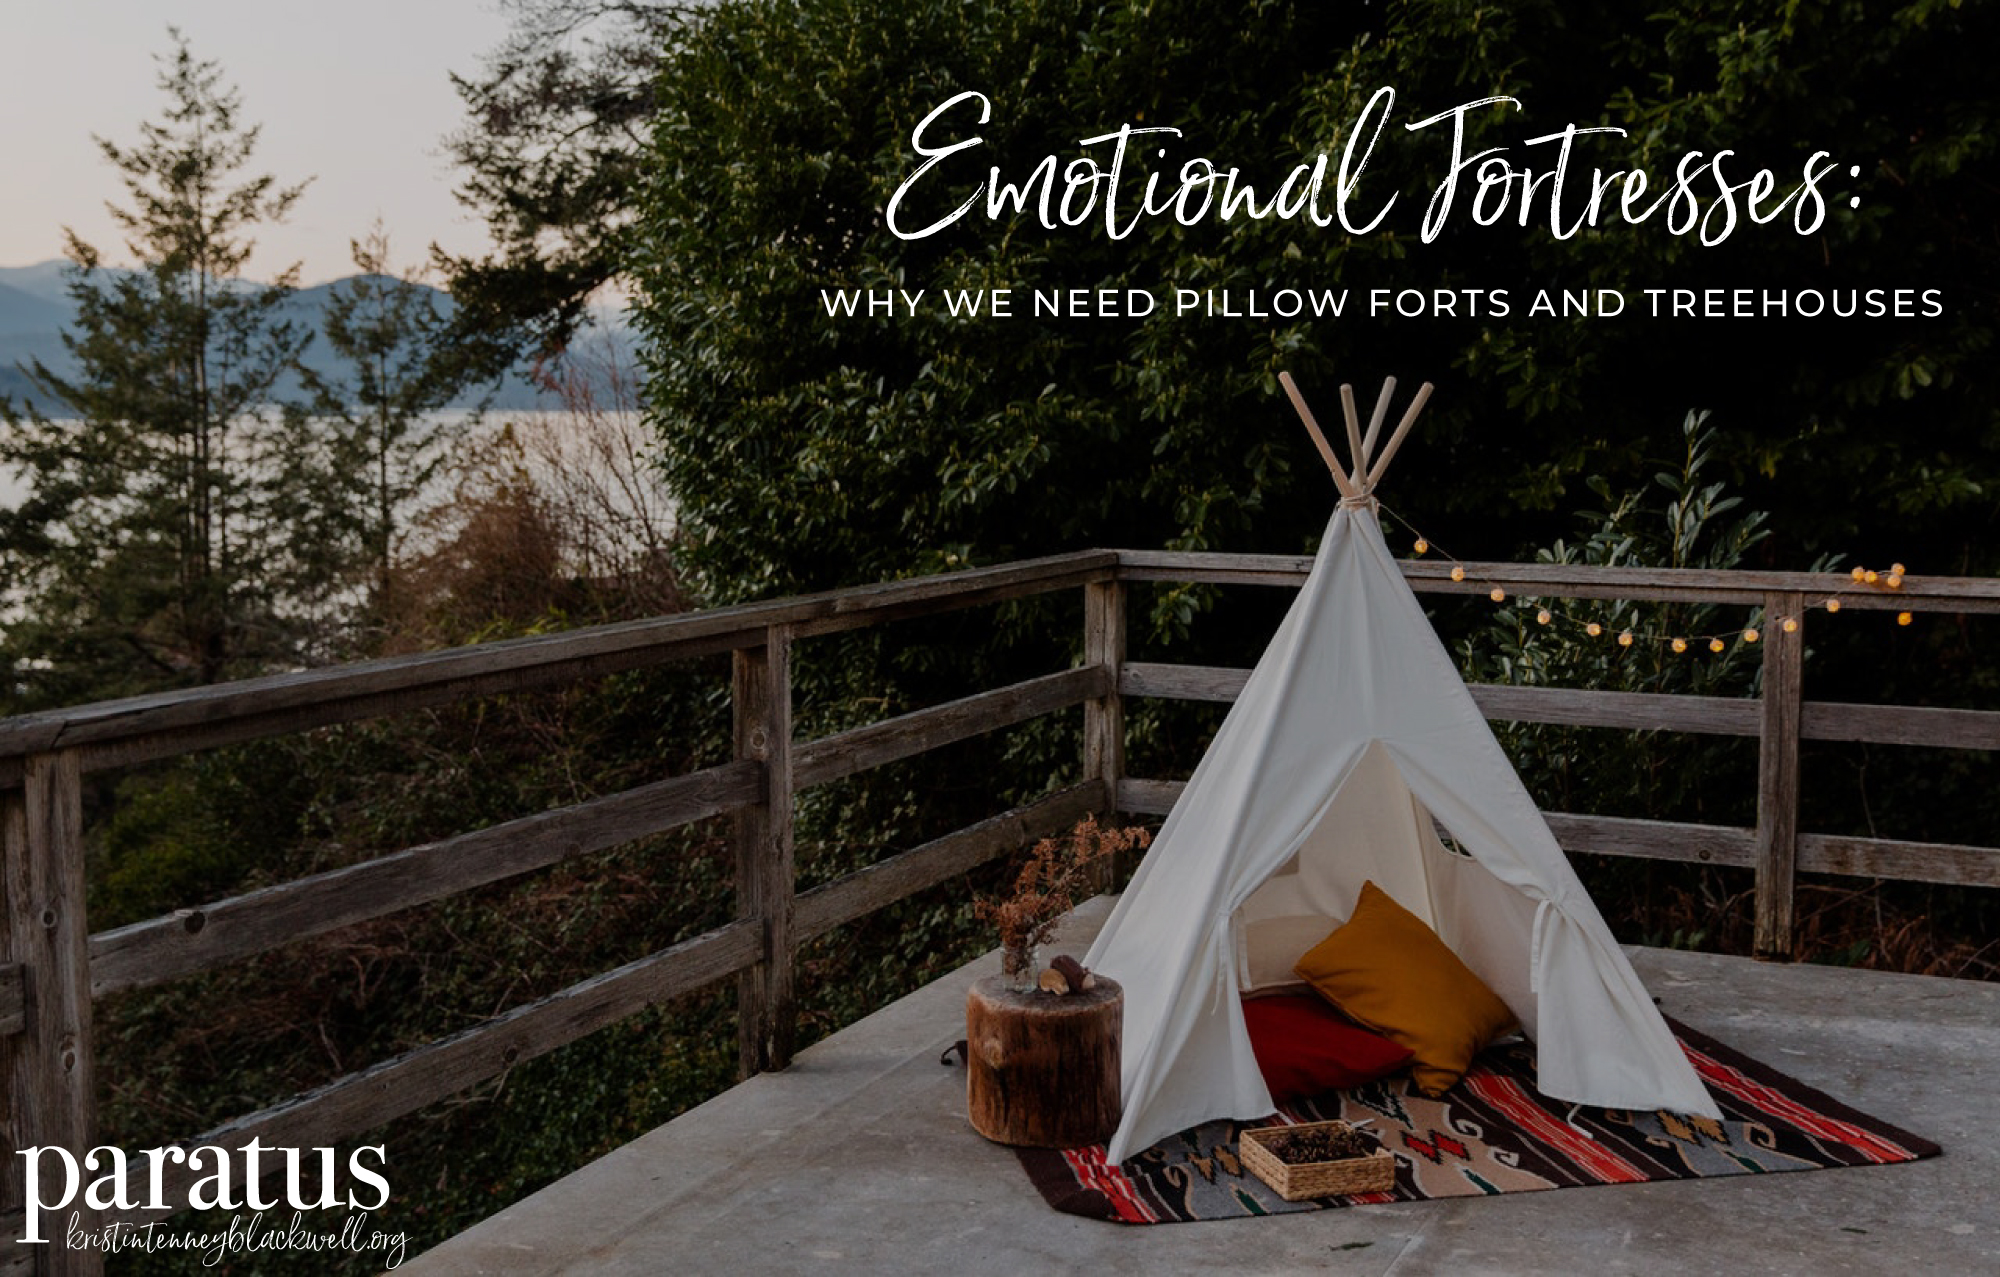 A tent as an emotional fortress